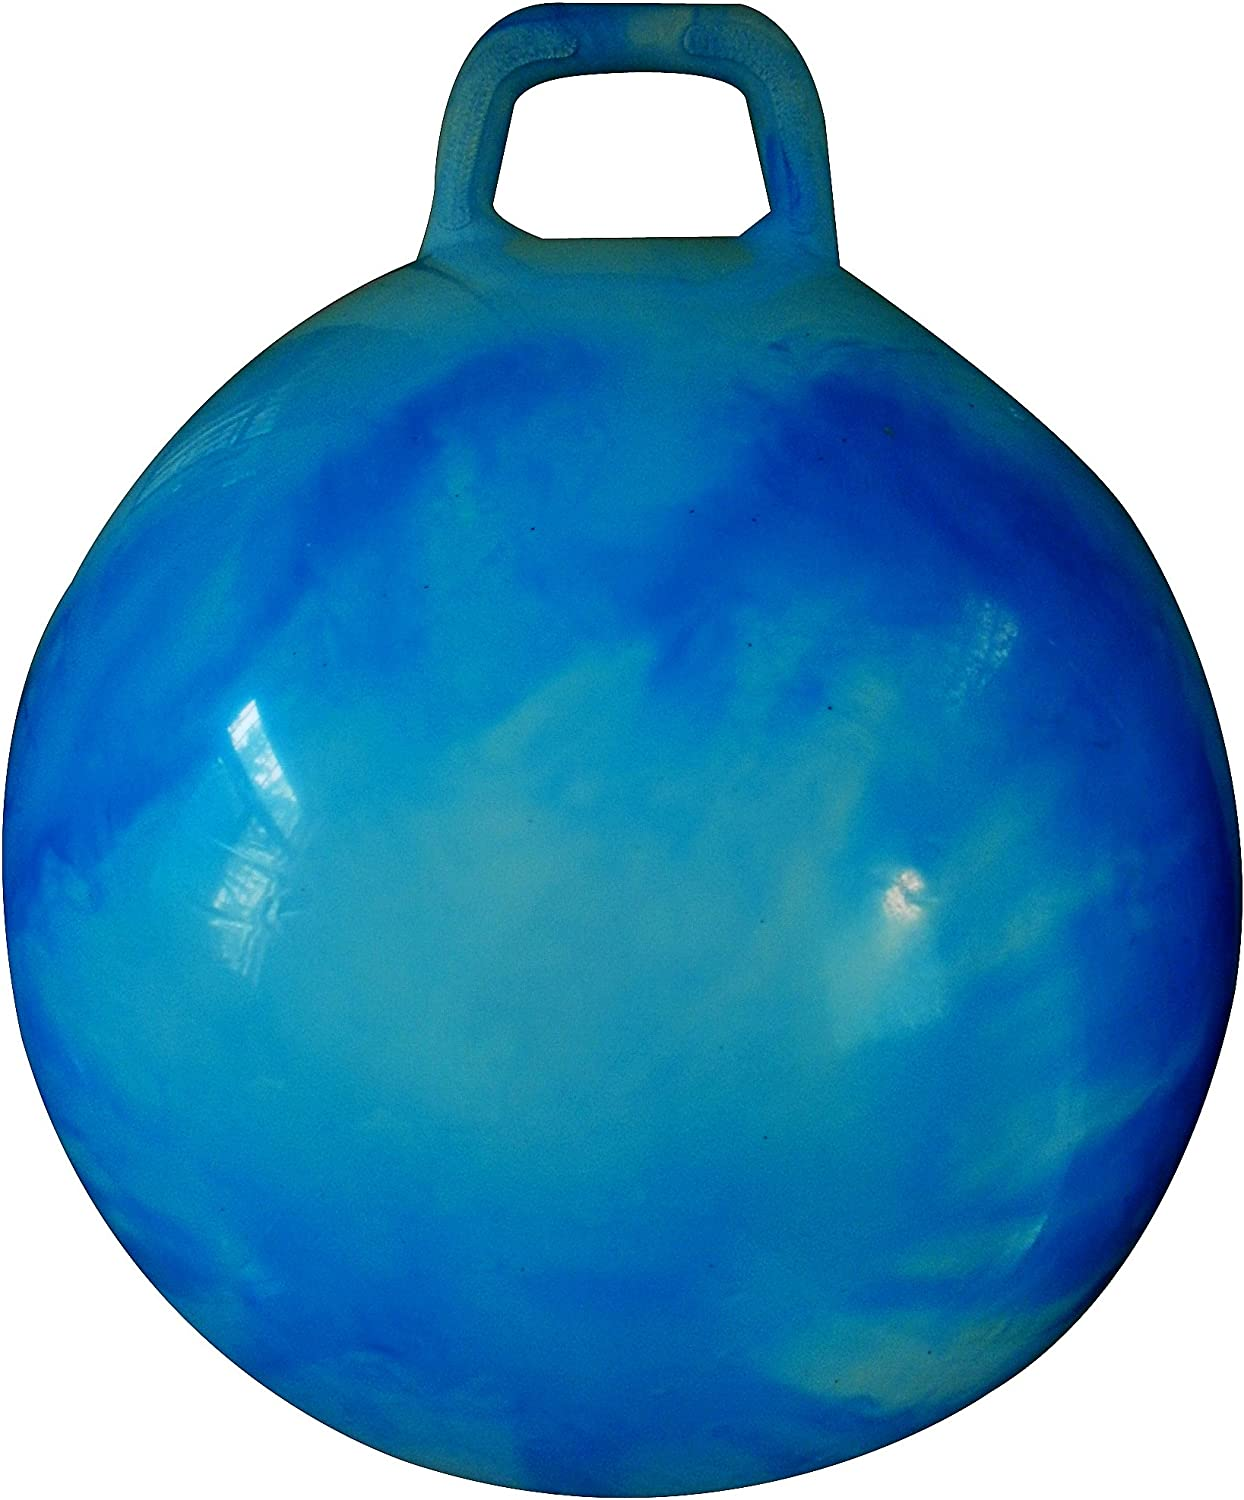 AppleRound Space Hopper Ball: 28in/70cm Diameter for Ages 13 and